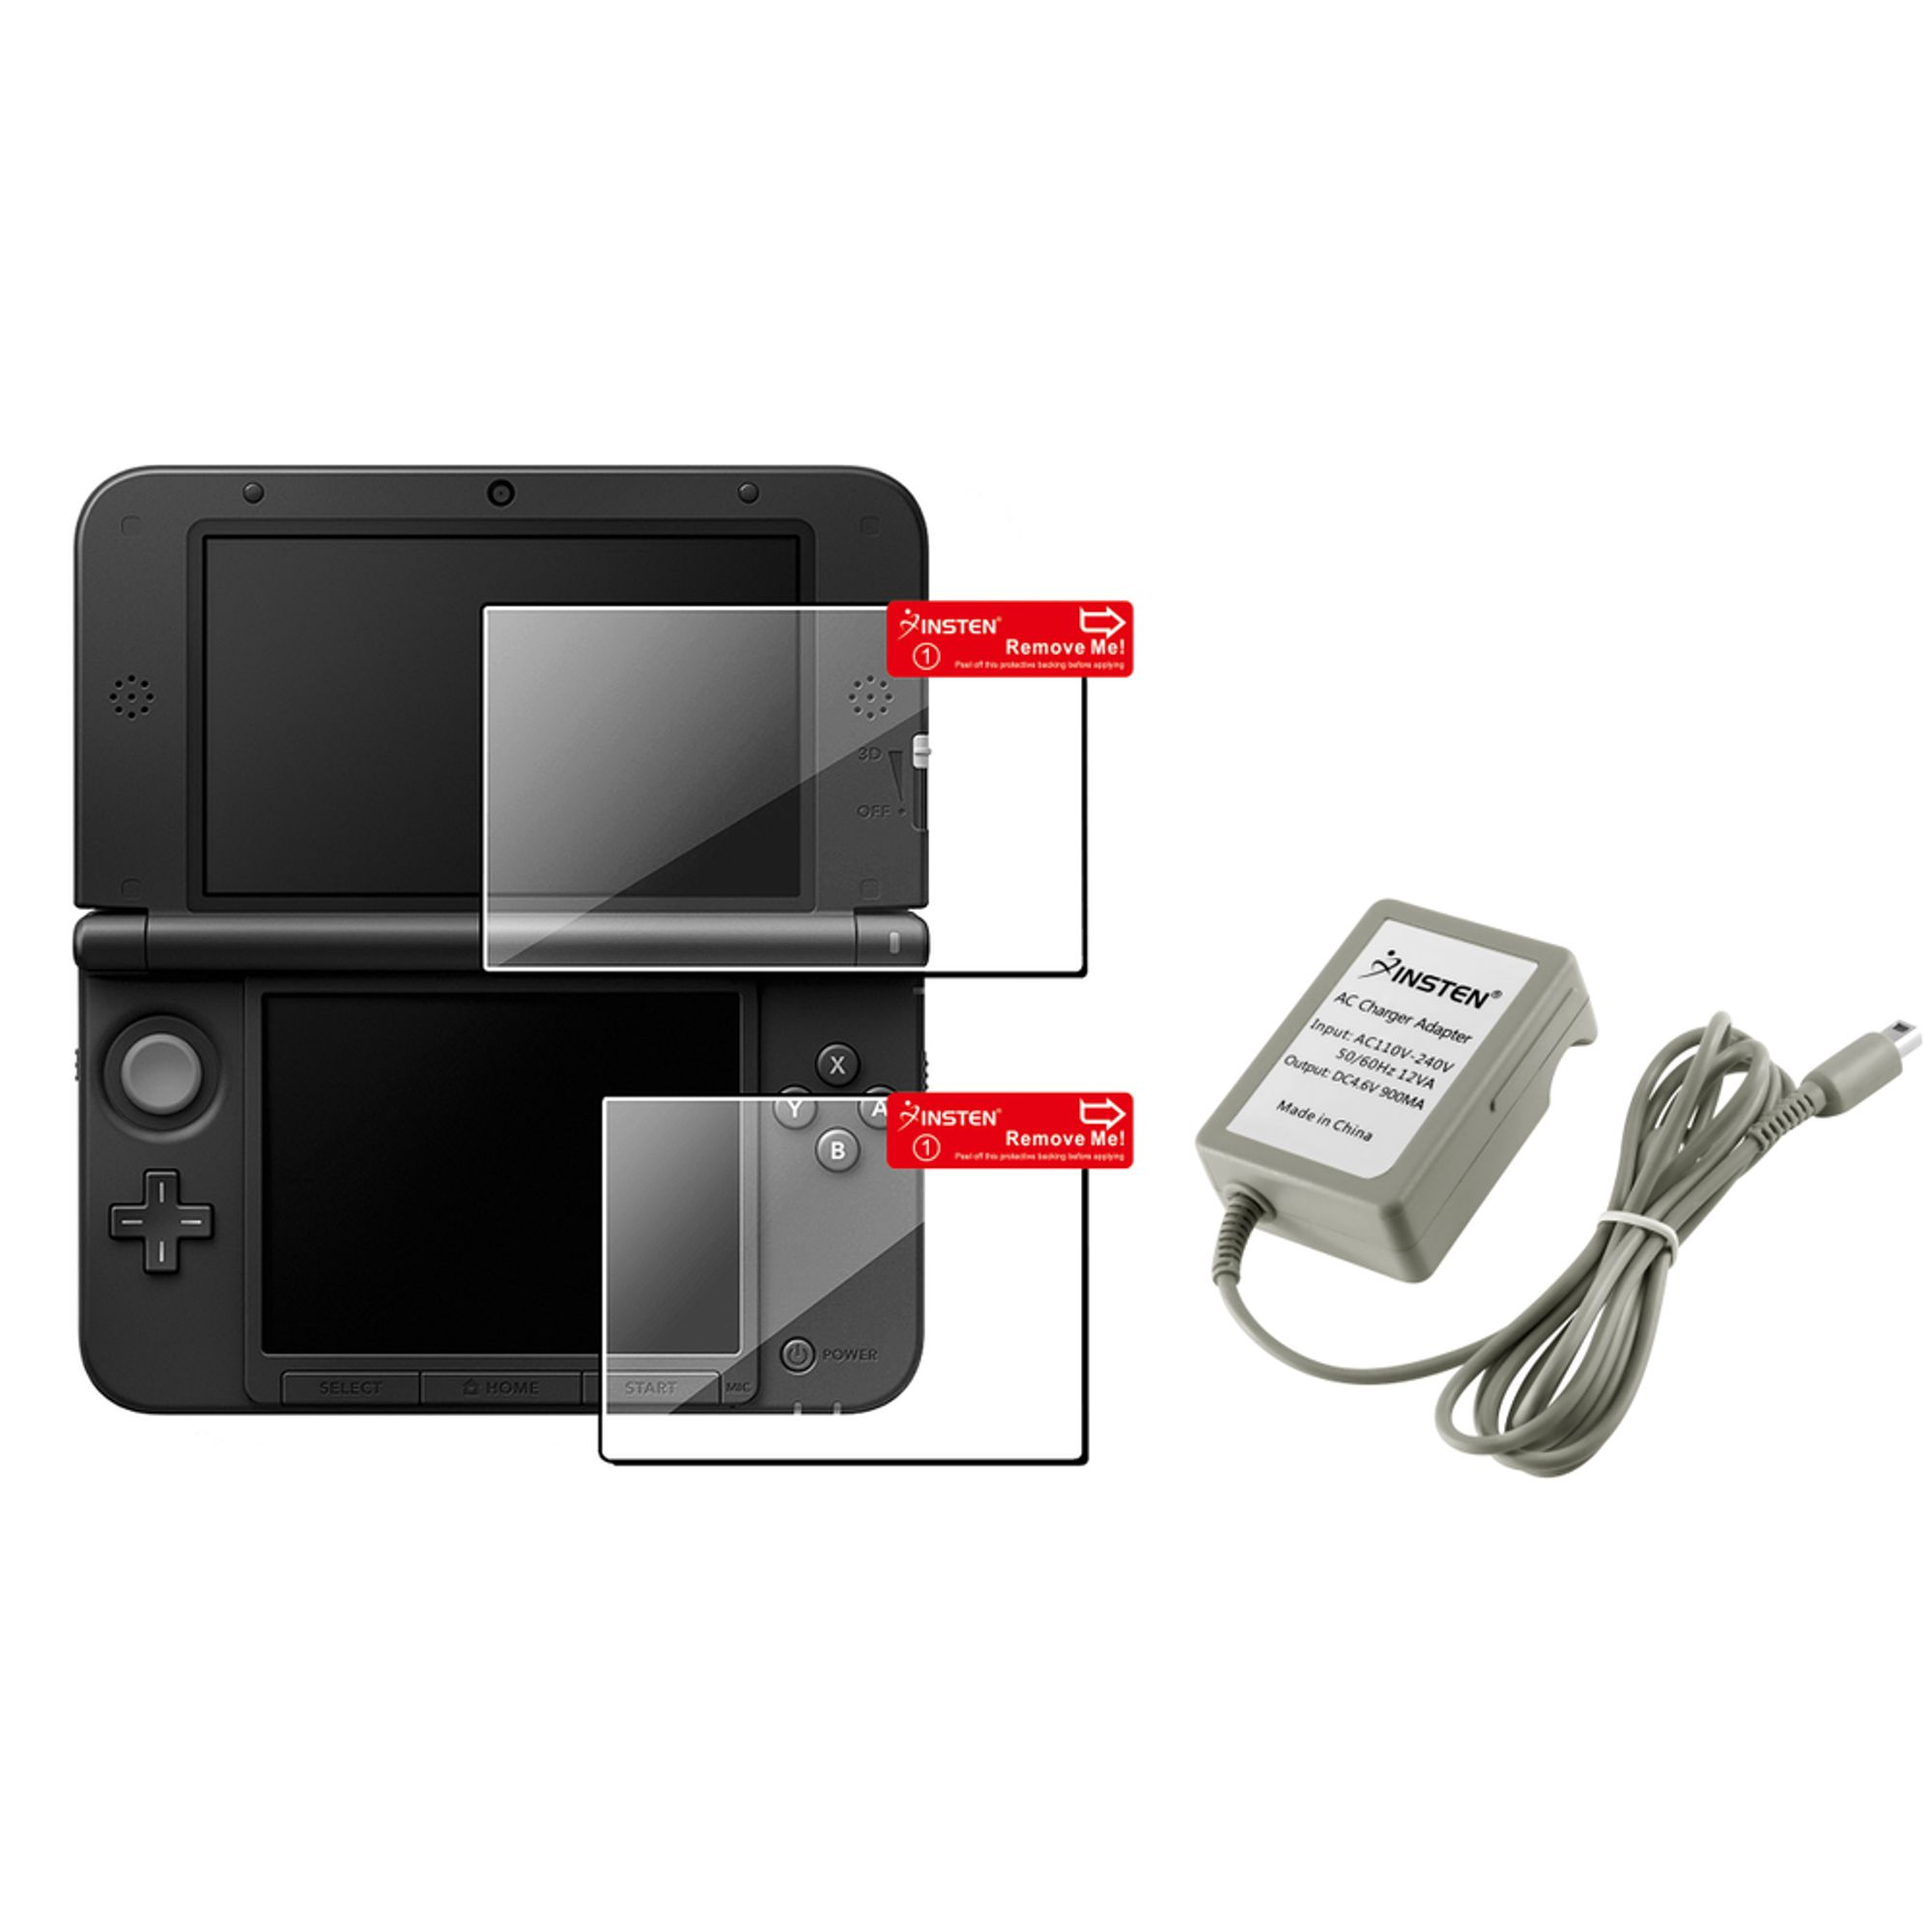 Insten Clear Top & Bottom LCD Screen Protector kit + Travel AC Wall Charger For Nintendo NEW 3DS XL LL / 3DS XL LL